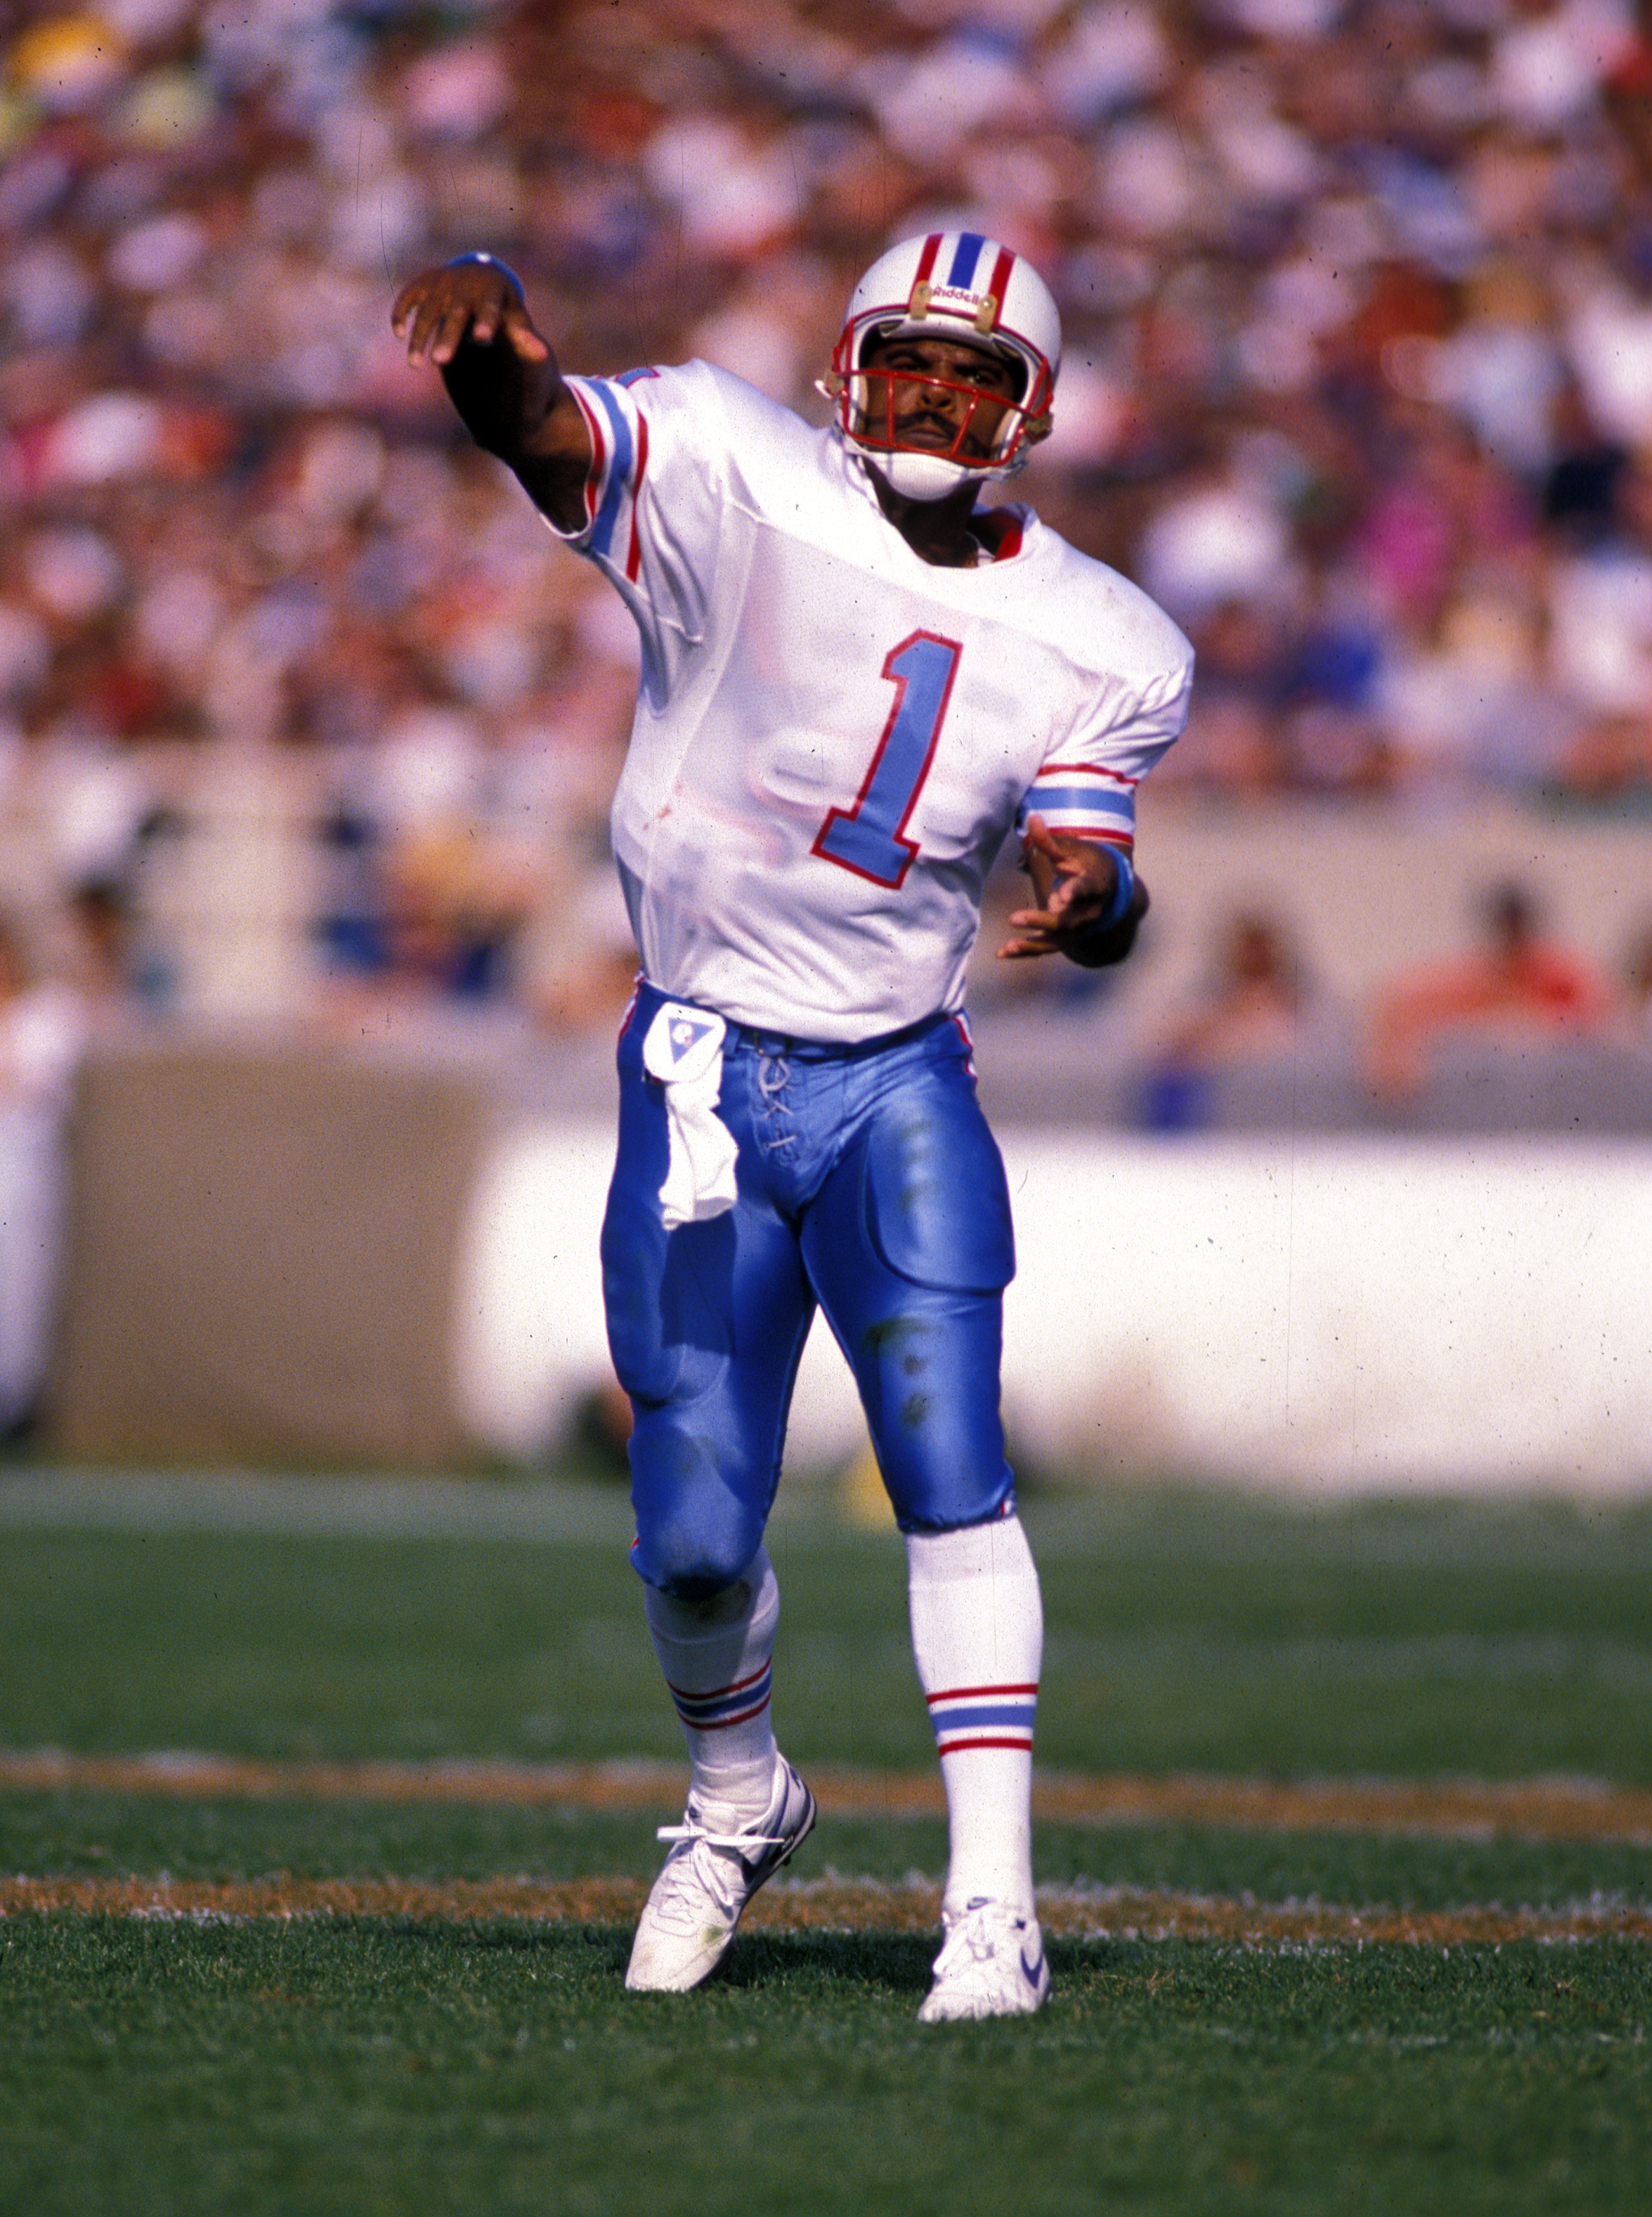 promo code 92b6e afcce For Hall-of-Fame QB Warren Moon, philanthropy is his priority